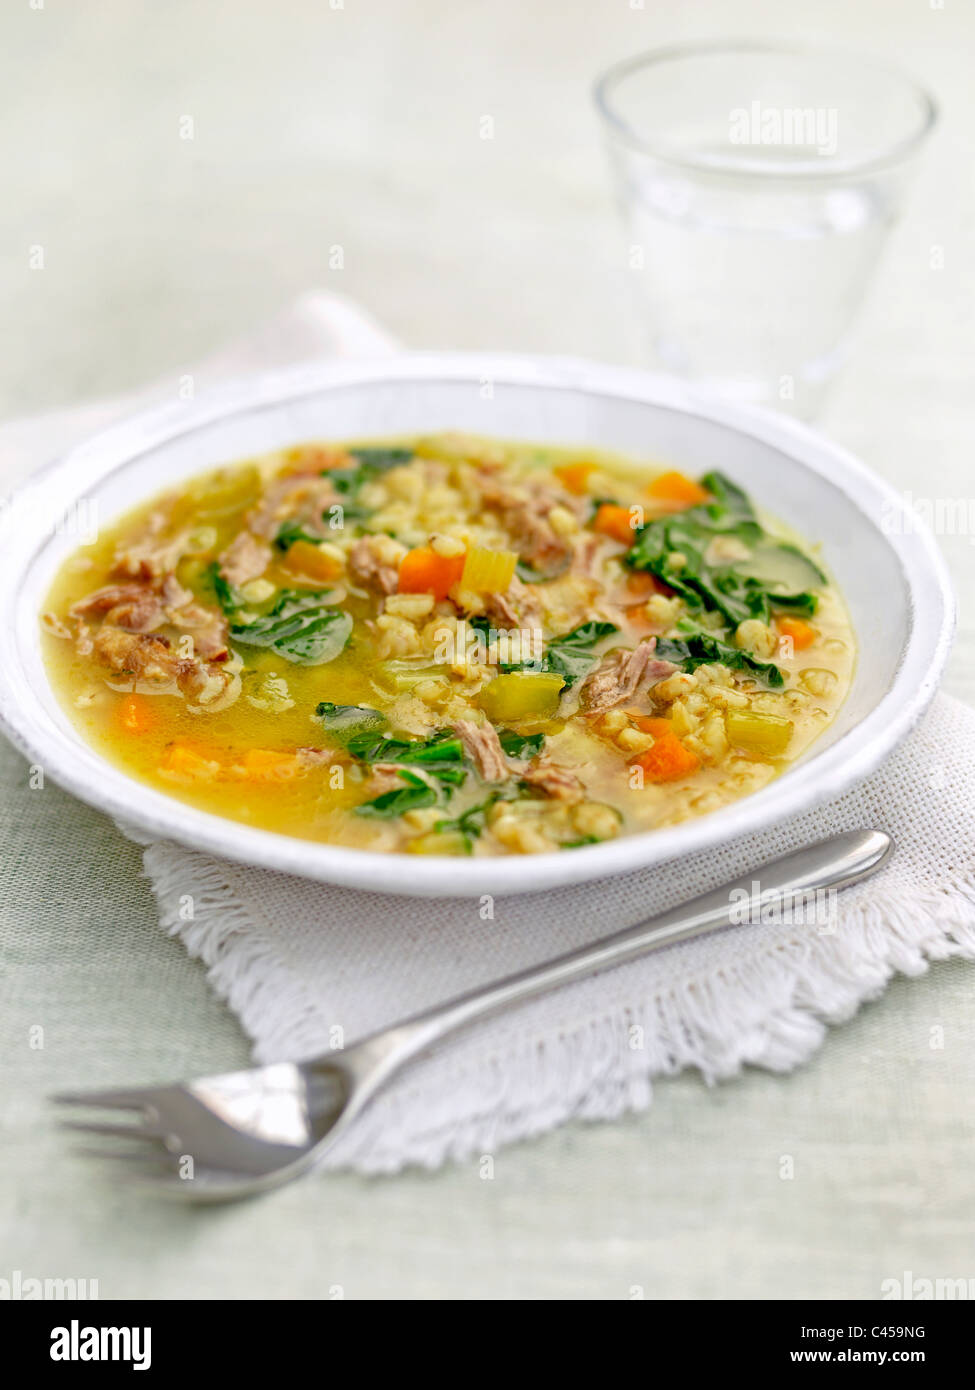 Plate of lamb with barley and spinach stew, close-up - Stock Image